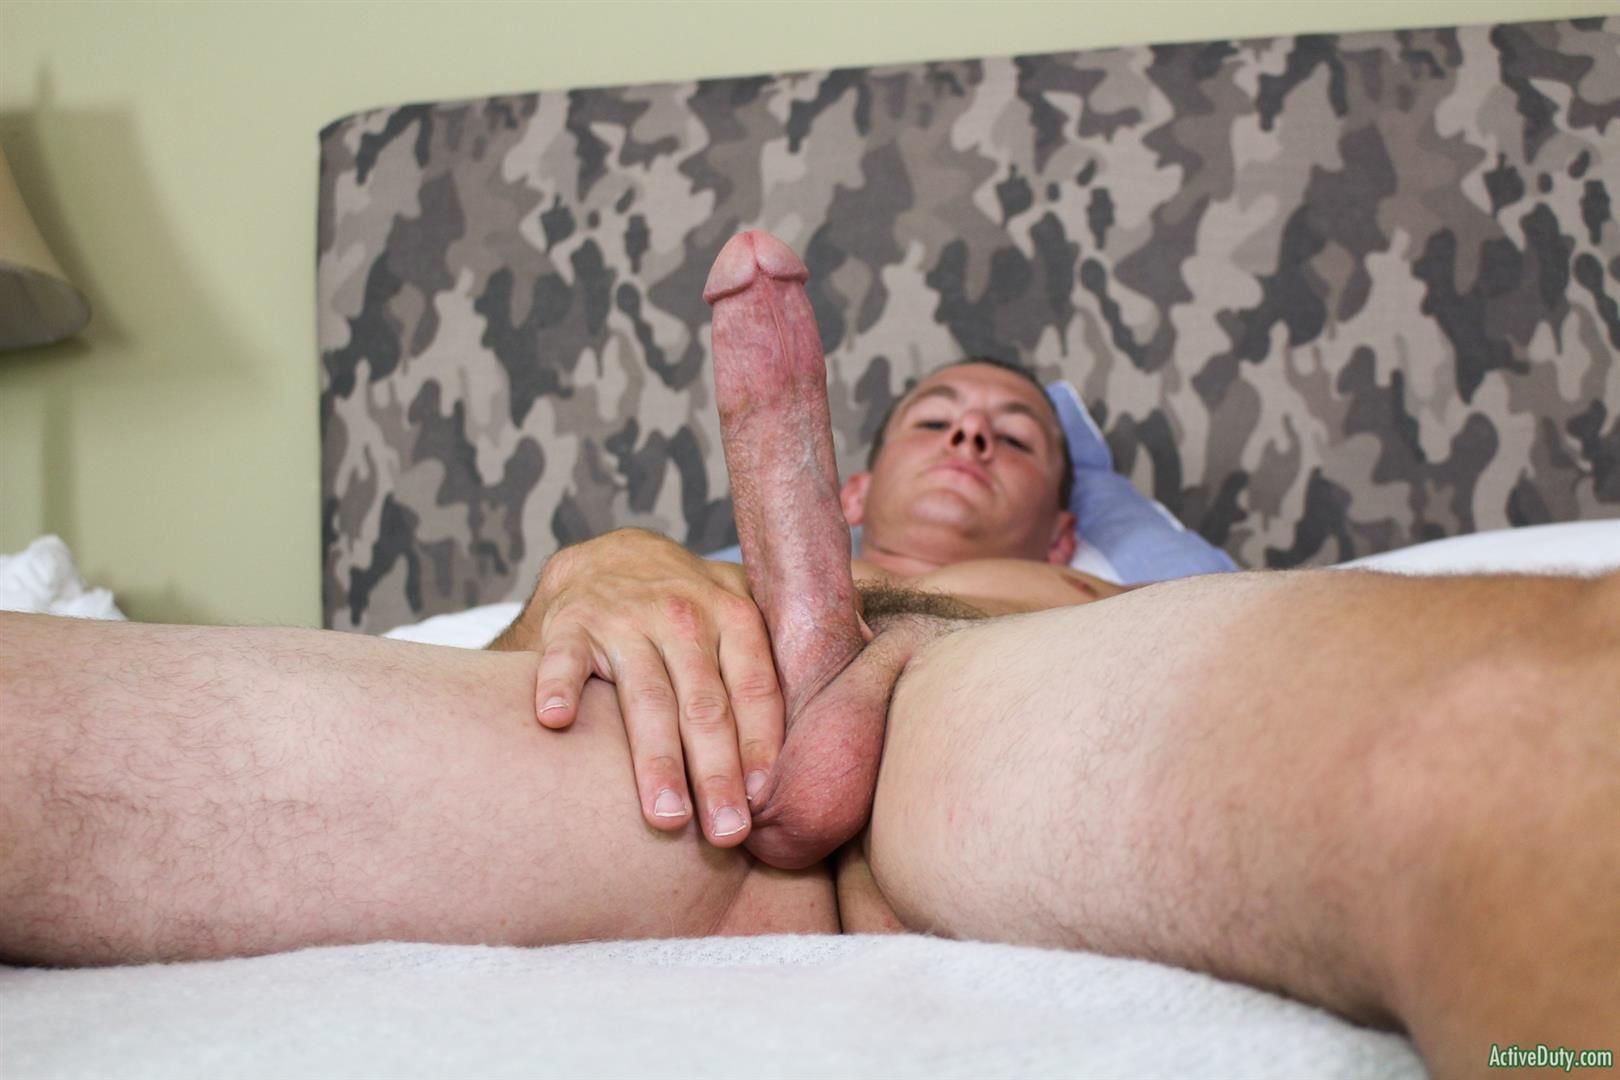 Active-Duty-Phoenix-River-Navy-Guy-With-A-Big-Cut-Cock-Jerking-Off-10 Muscular Navy Hunk Shows Off And Strokes His Huge Horse Cock